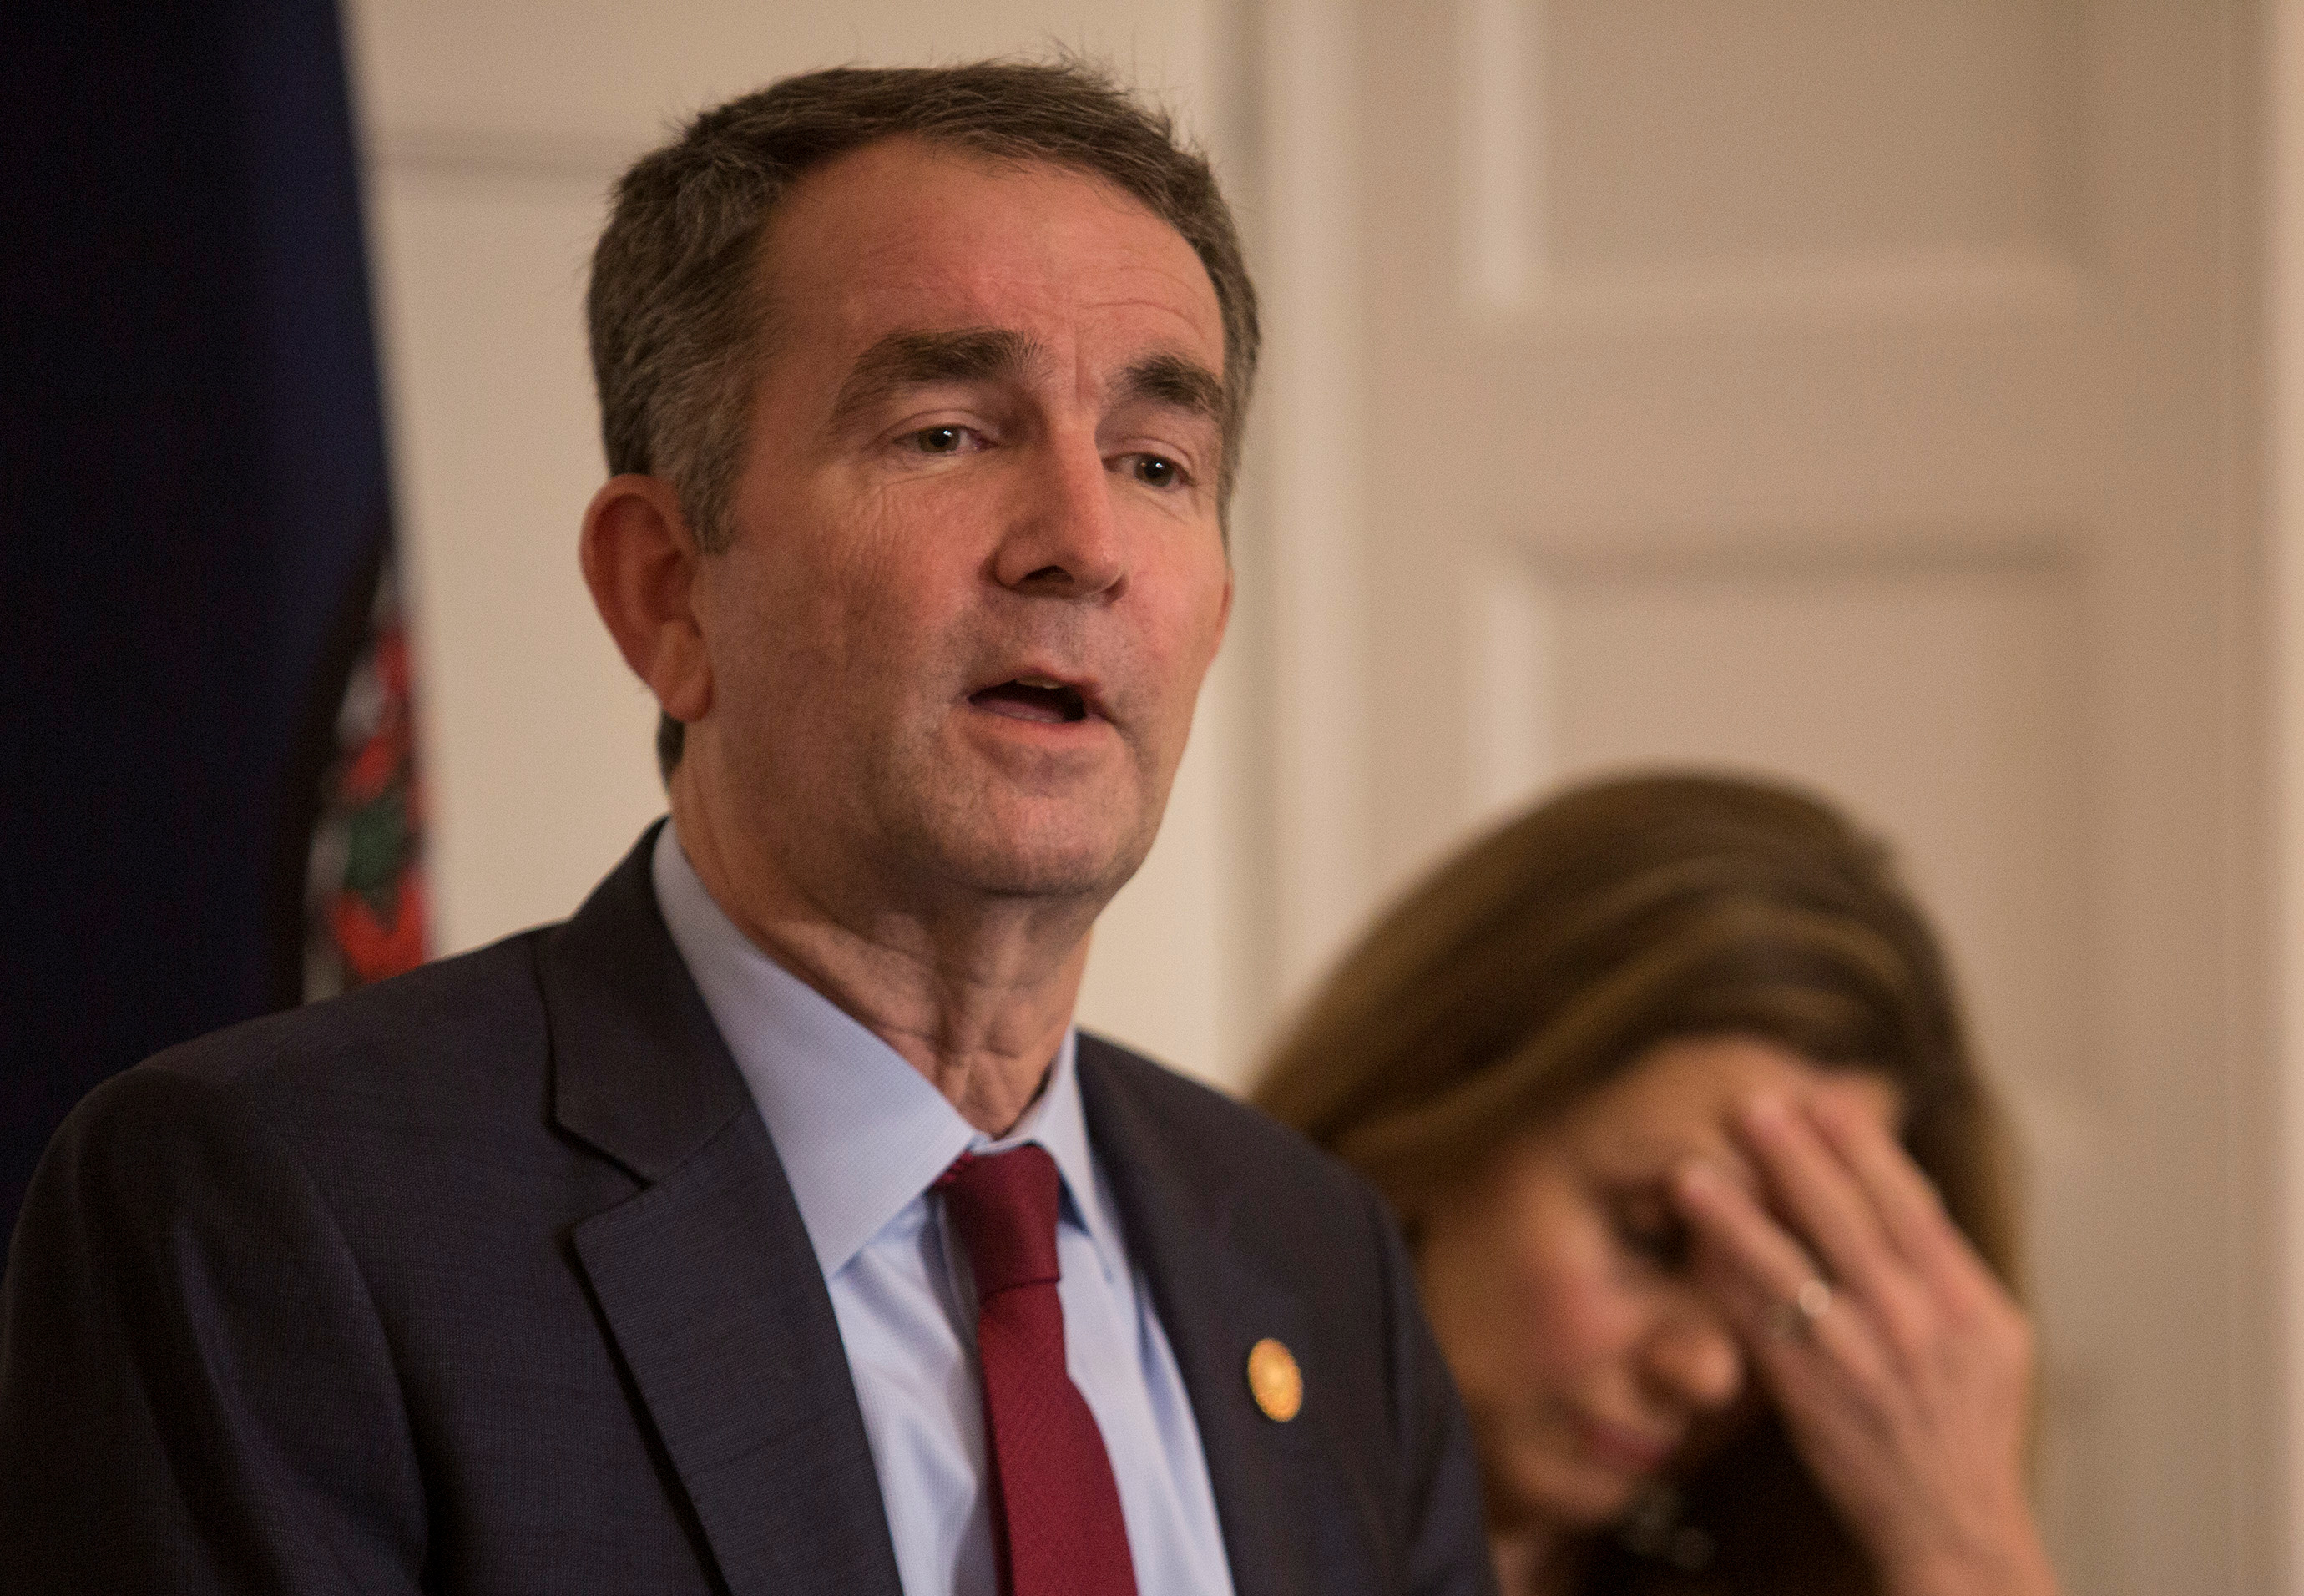 Virginia blackface scandal: Ralph Northam vows to stay as governor